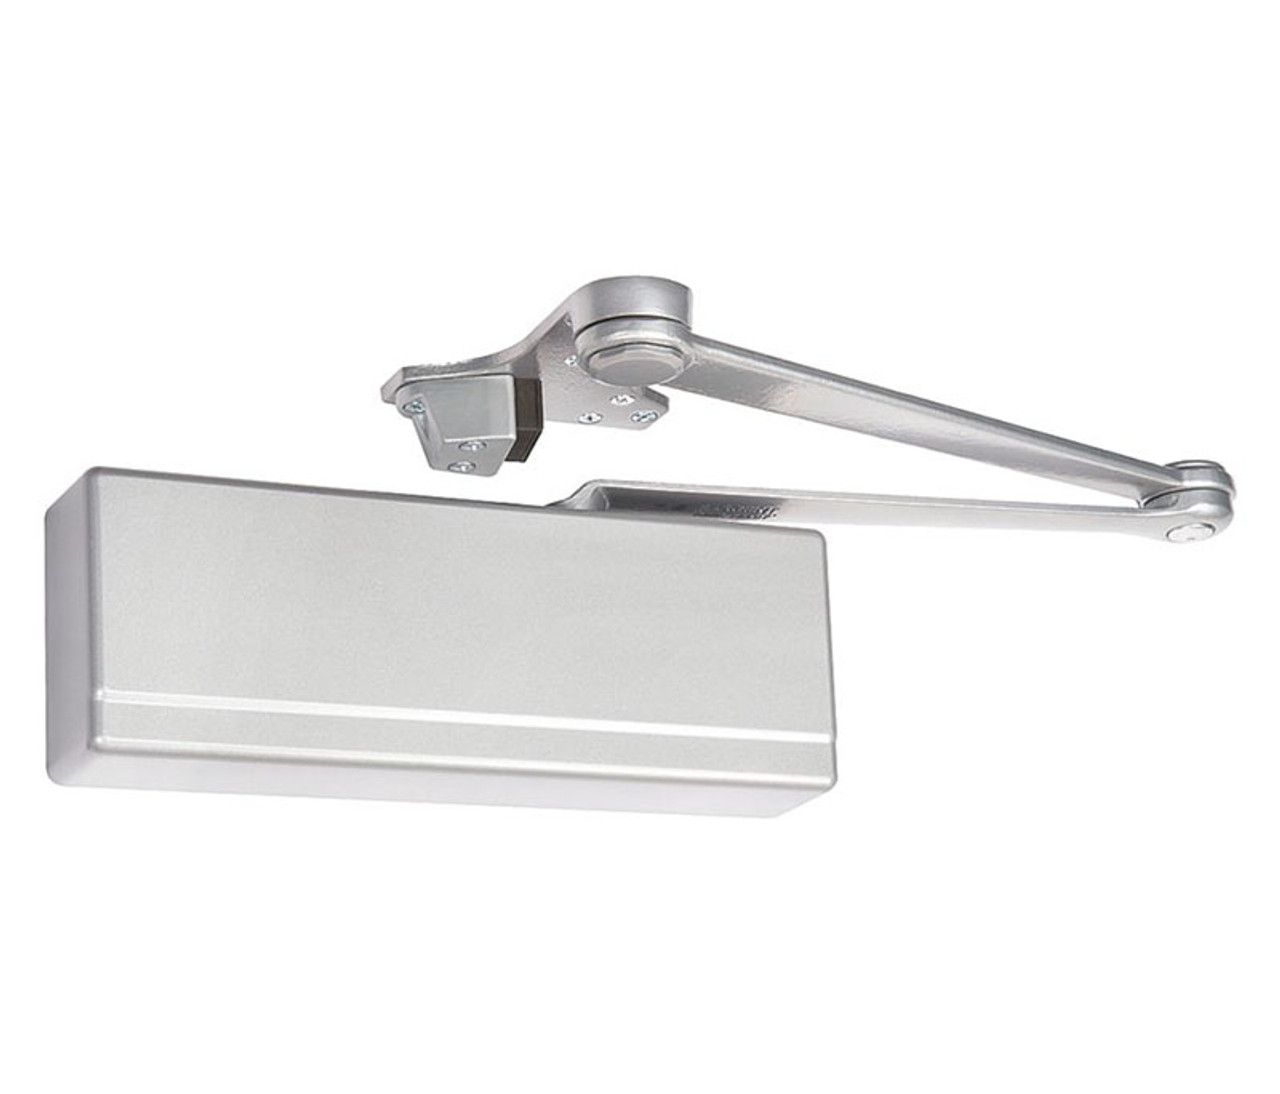 Picture of: Sargent 281 Cps Tb En Surface Door Closer Heavy Duty Parallel Arm With Compression Stop Thru Bolts